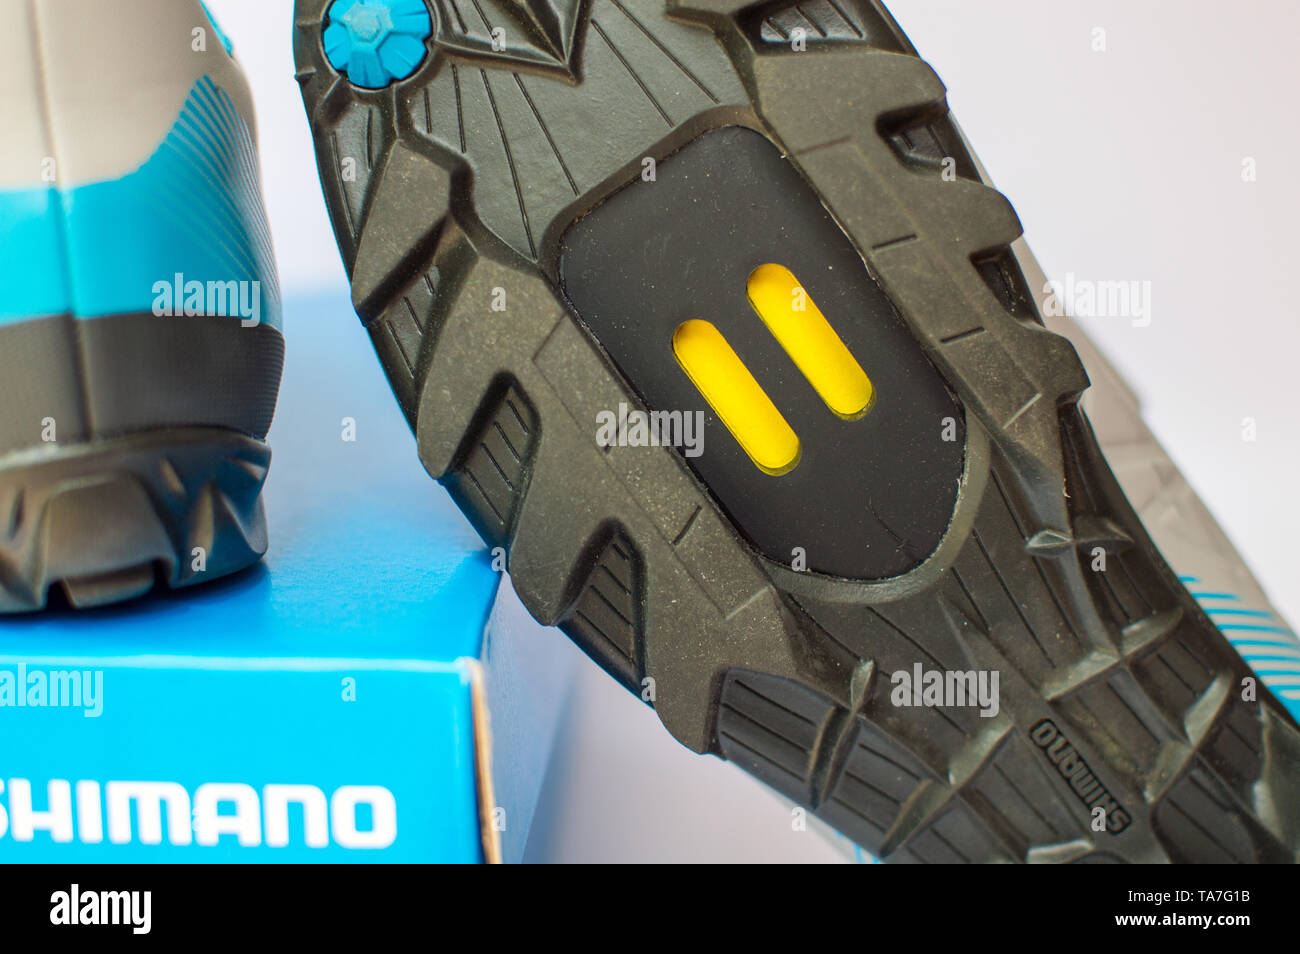 Shimano SPD shoes - Stock Image